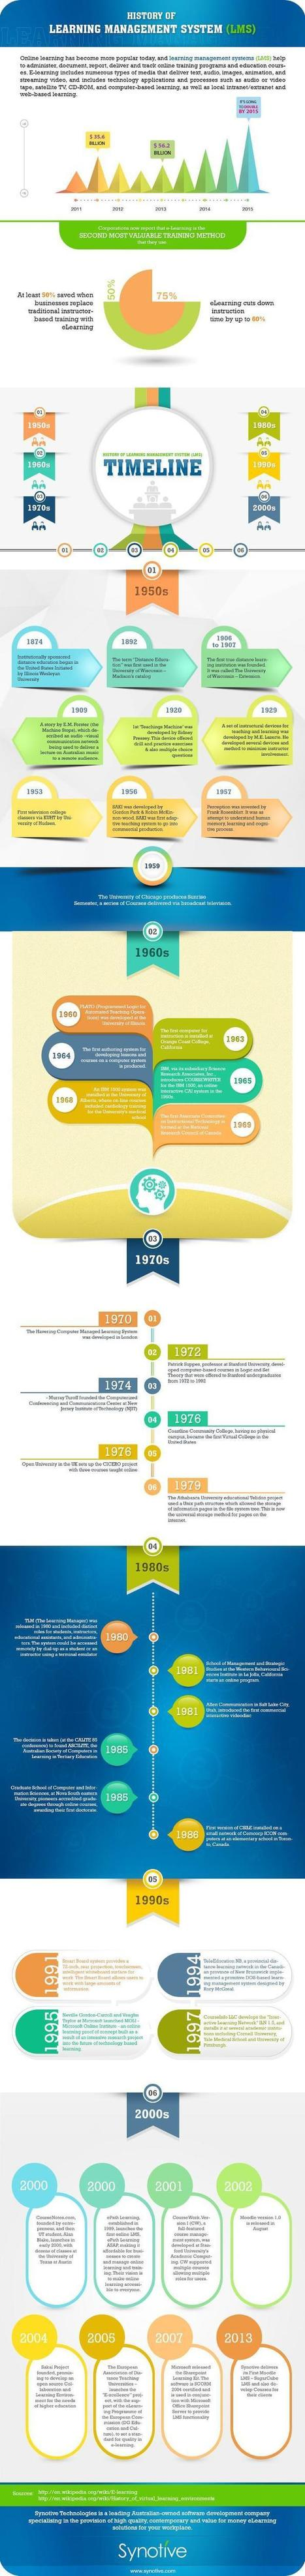 Learning Management System Timeline Infographic - e-Learning Infographics | The information Edge | Scoop.it